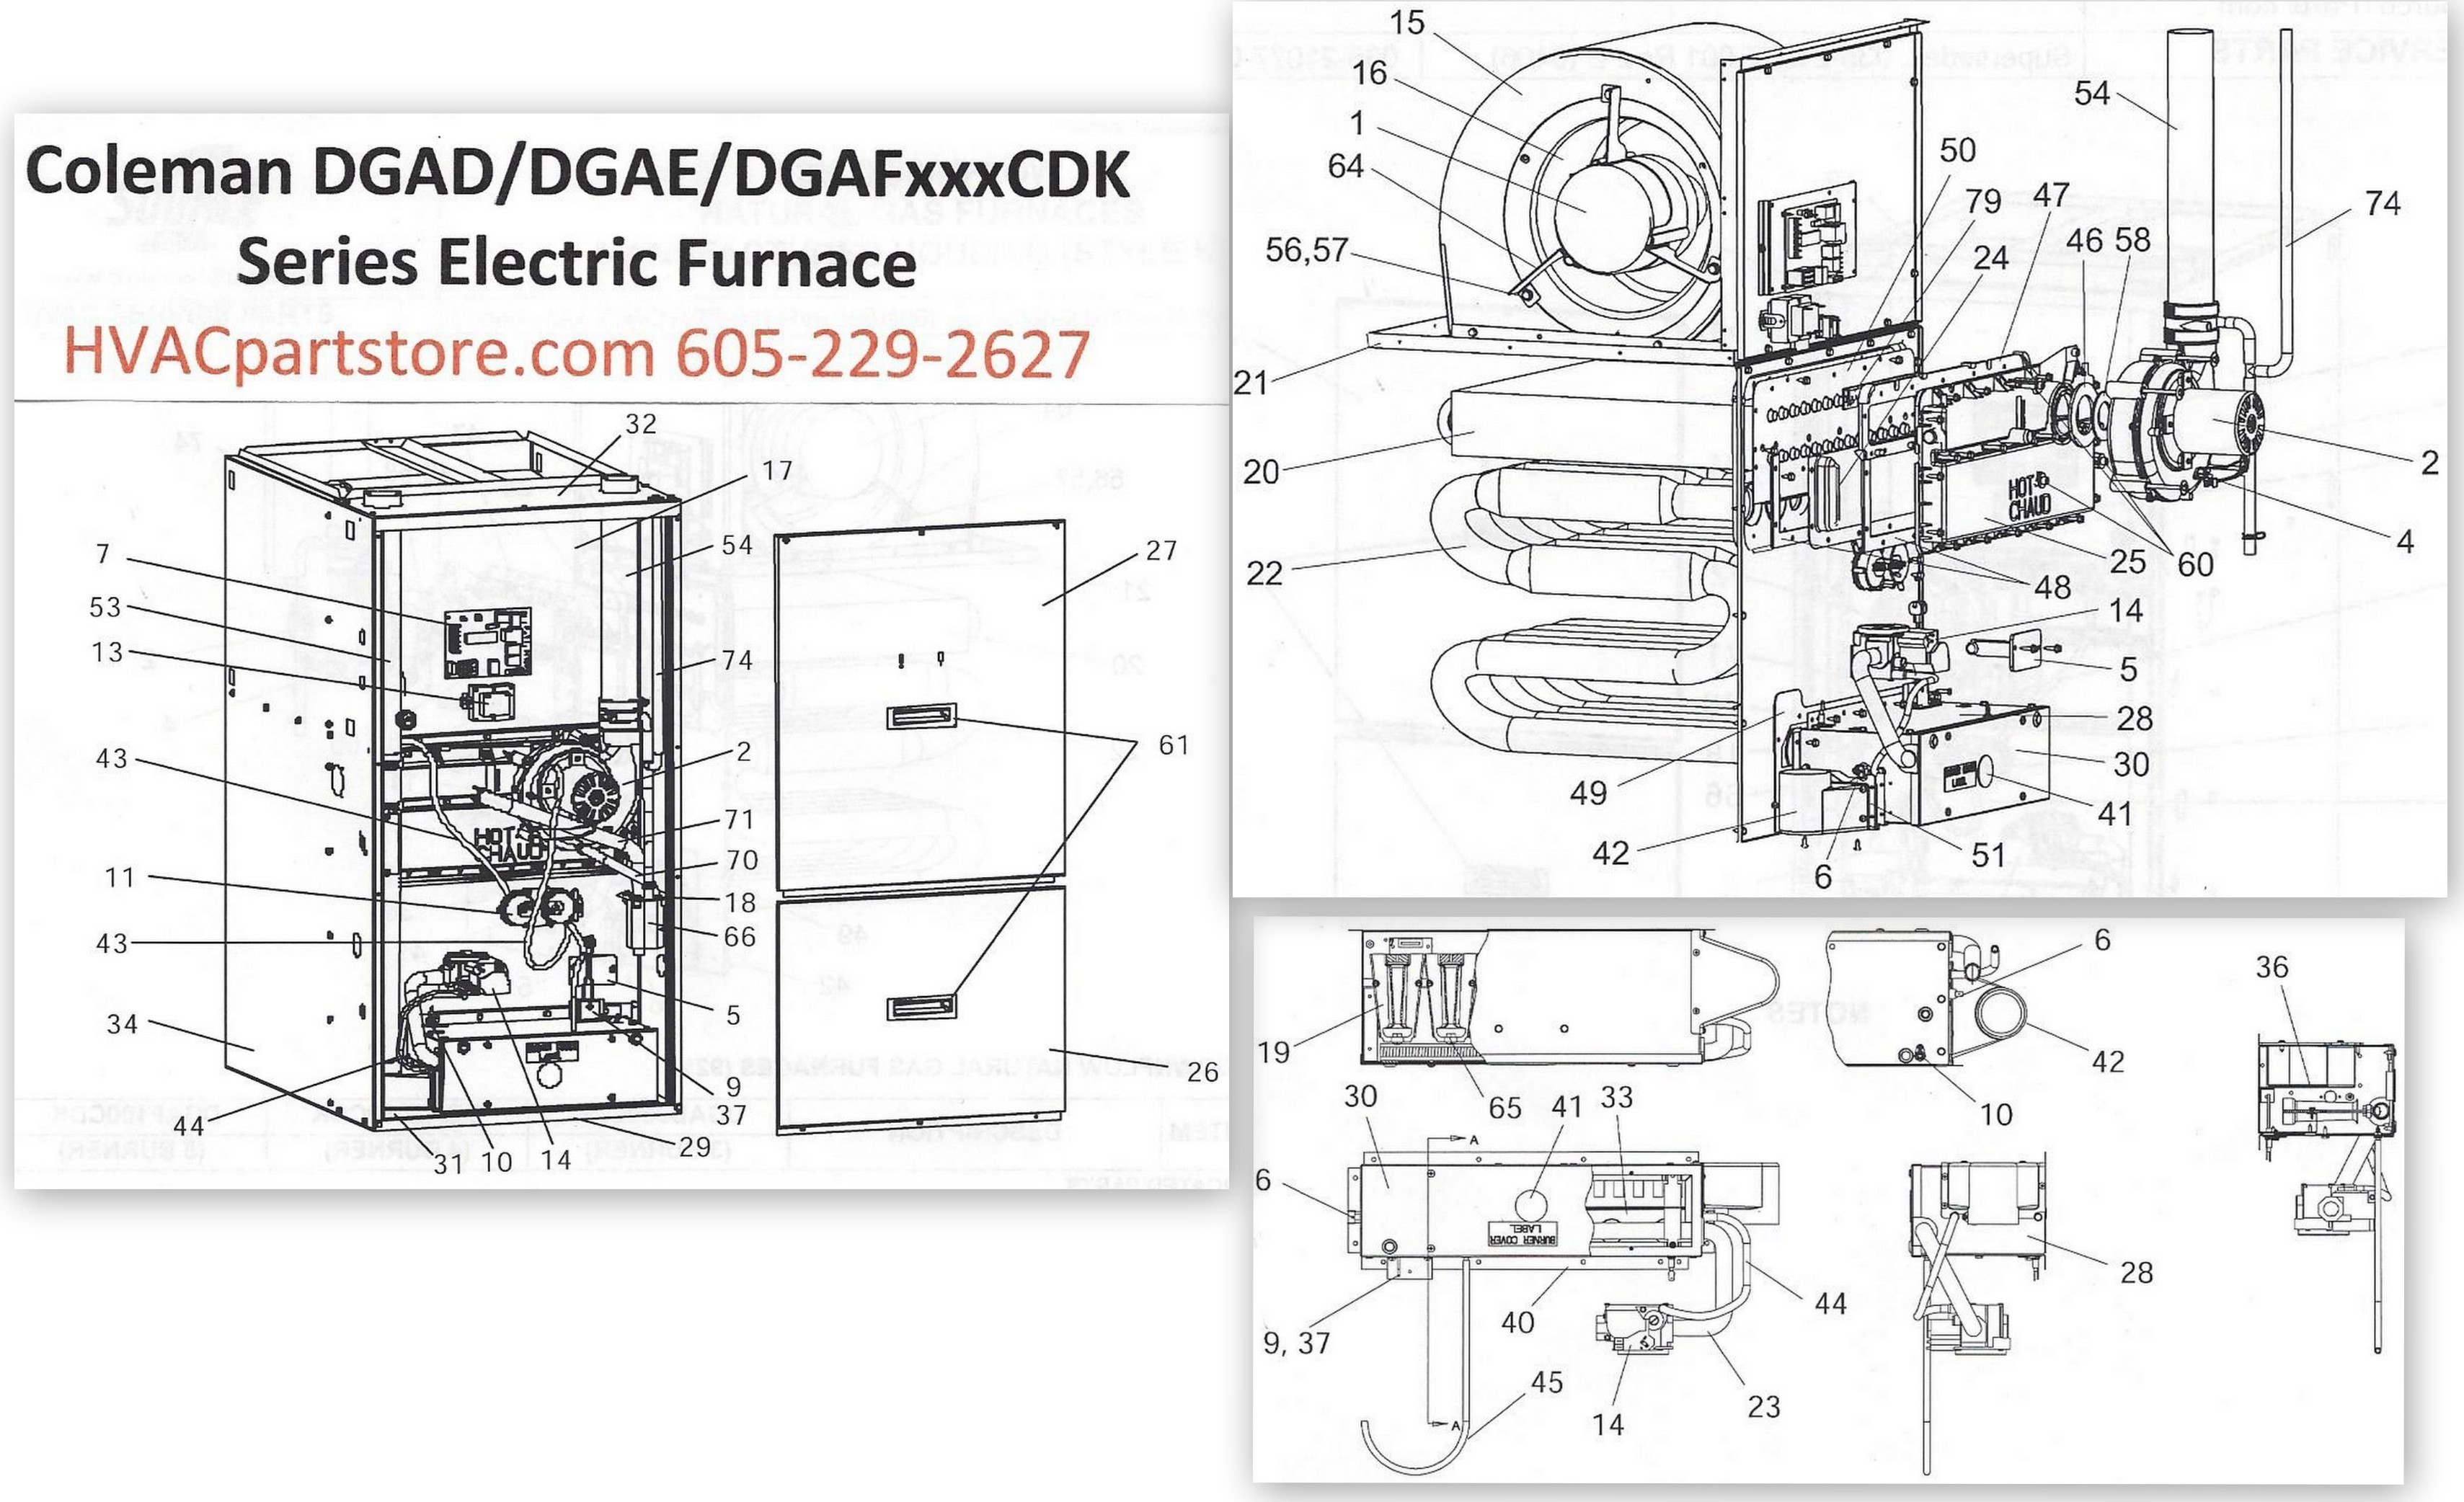 atwood furnace parts diagram wiring diagram for rv furnace best atwood furnace wiring diagram of atwood furnace parts diagram suburban nt32 furnace wiring diagram wiring library